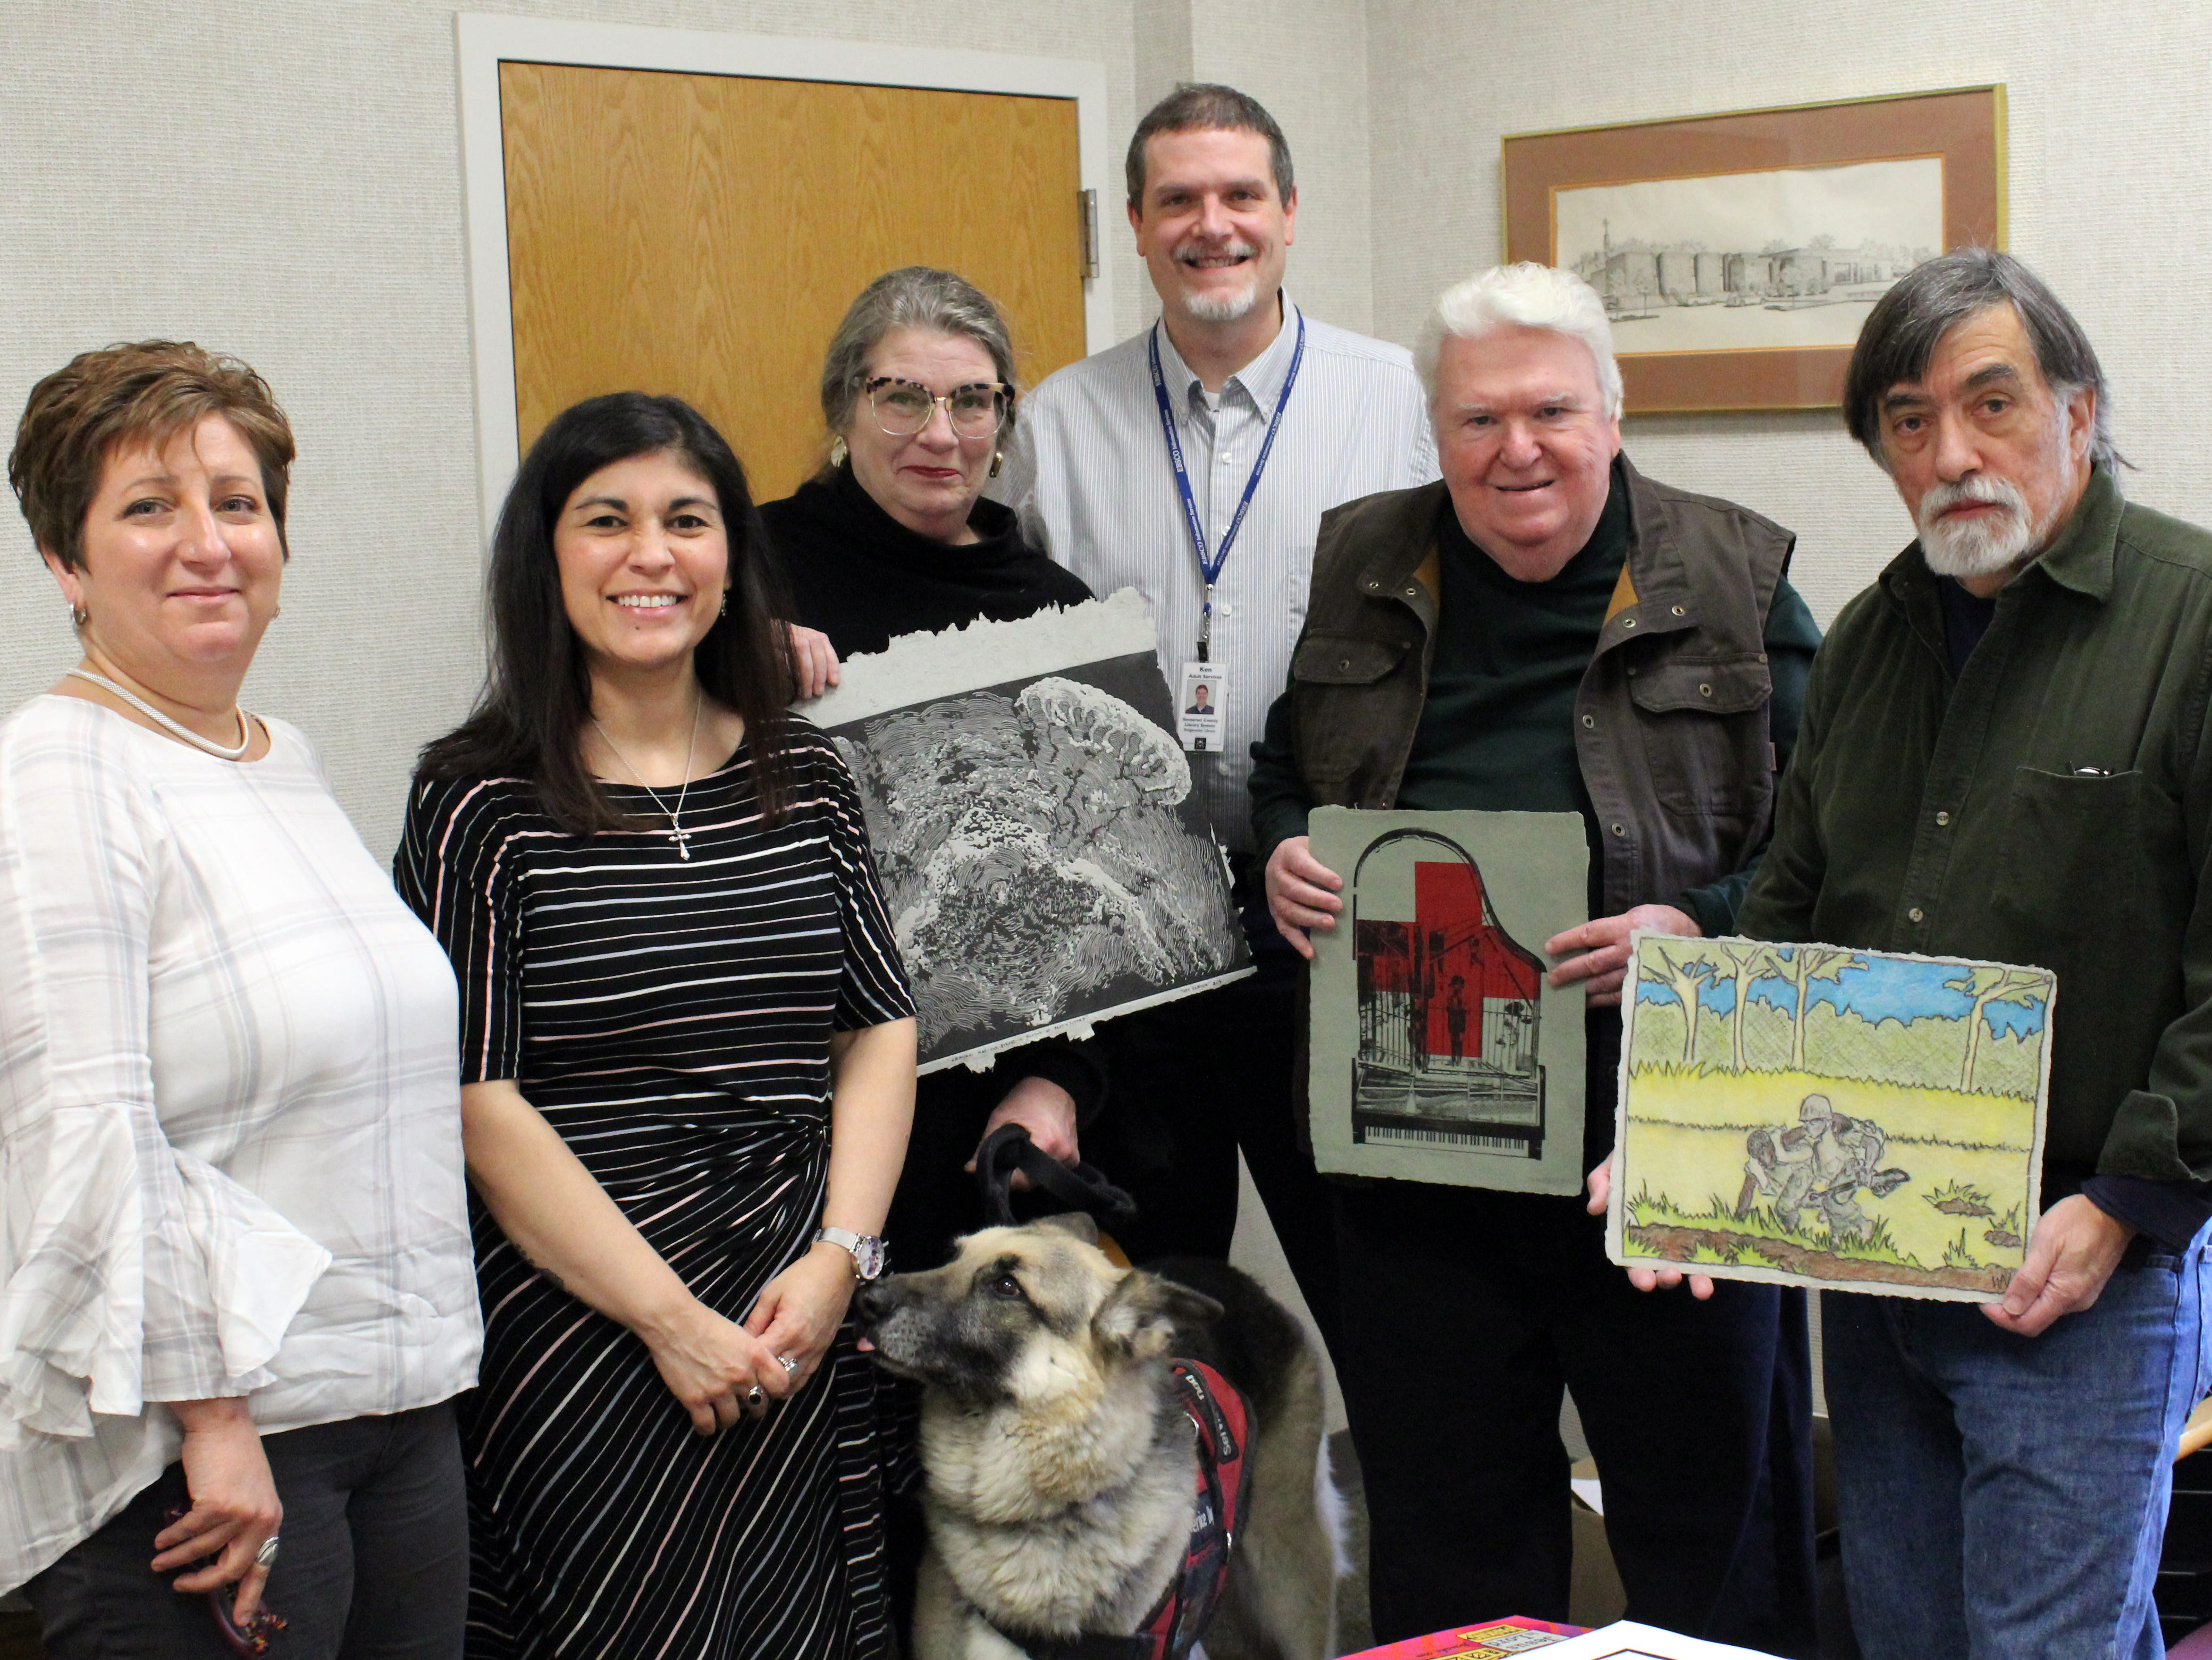 Somerset County Library System of New Jersey (SCLSNJ)'s Director of Human Resources Deanna Rivera; SCLSNJ's Technical Services Manager and Grant Coordinator Rebecca Sandoval Sloat; artist Tara Krause of Sparta and Wolpe, her 9-year-old German Shepard companion from Semper Fido; SCLSNJ's Adult Services Librarian Ken Kaufman; artist Jim Fallon of Hoboken; and Frontline Paper Studio Manager Walt Nygard of Teaneck; pose with some of the art being adding to the library's growing digital history collection.